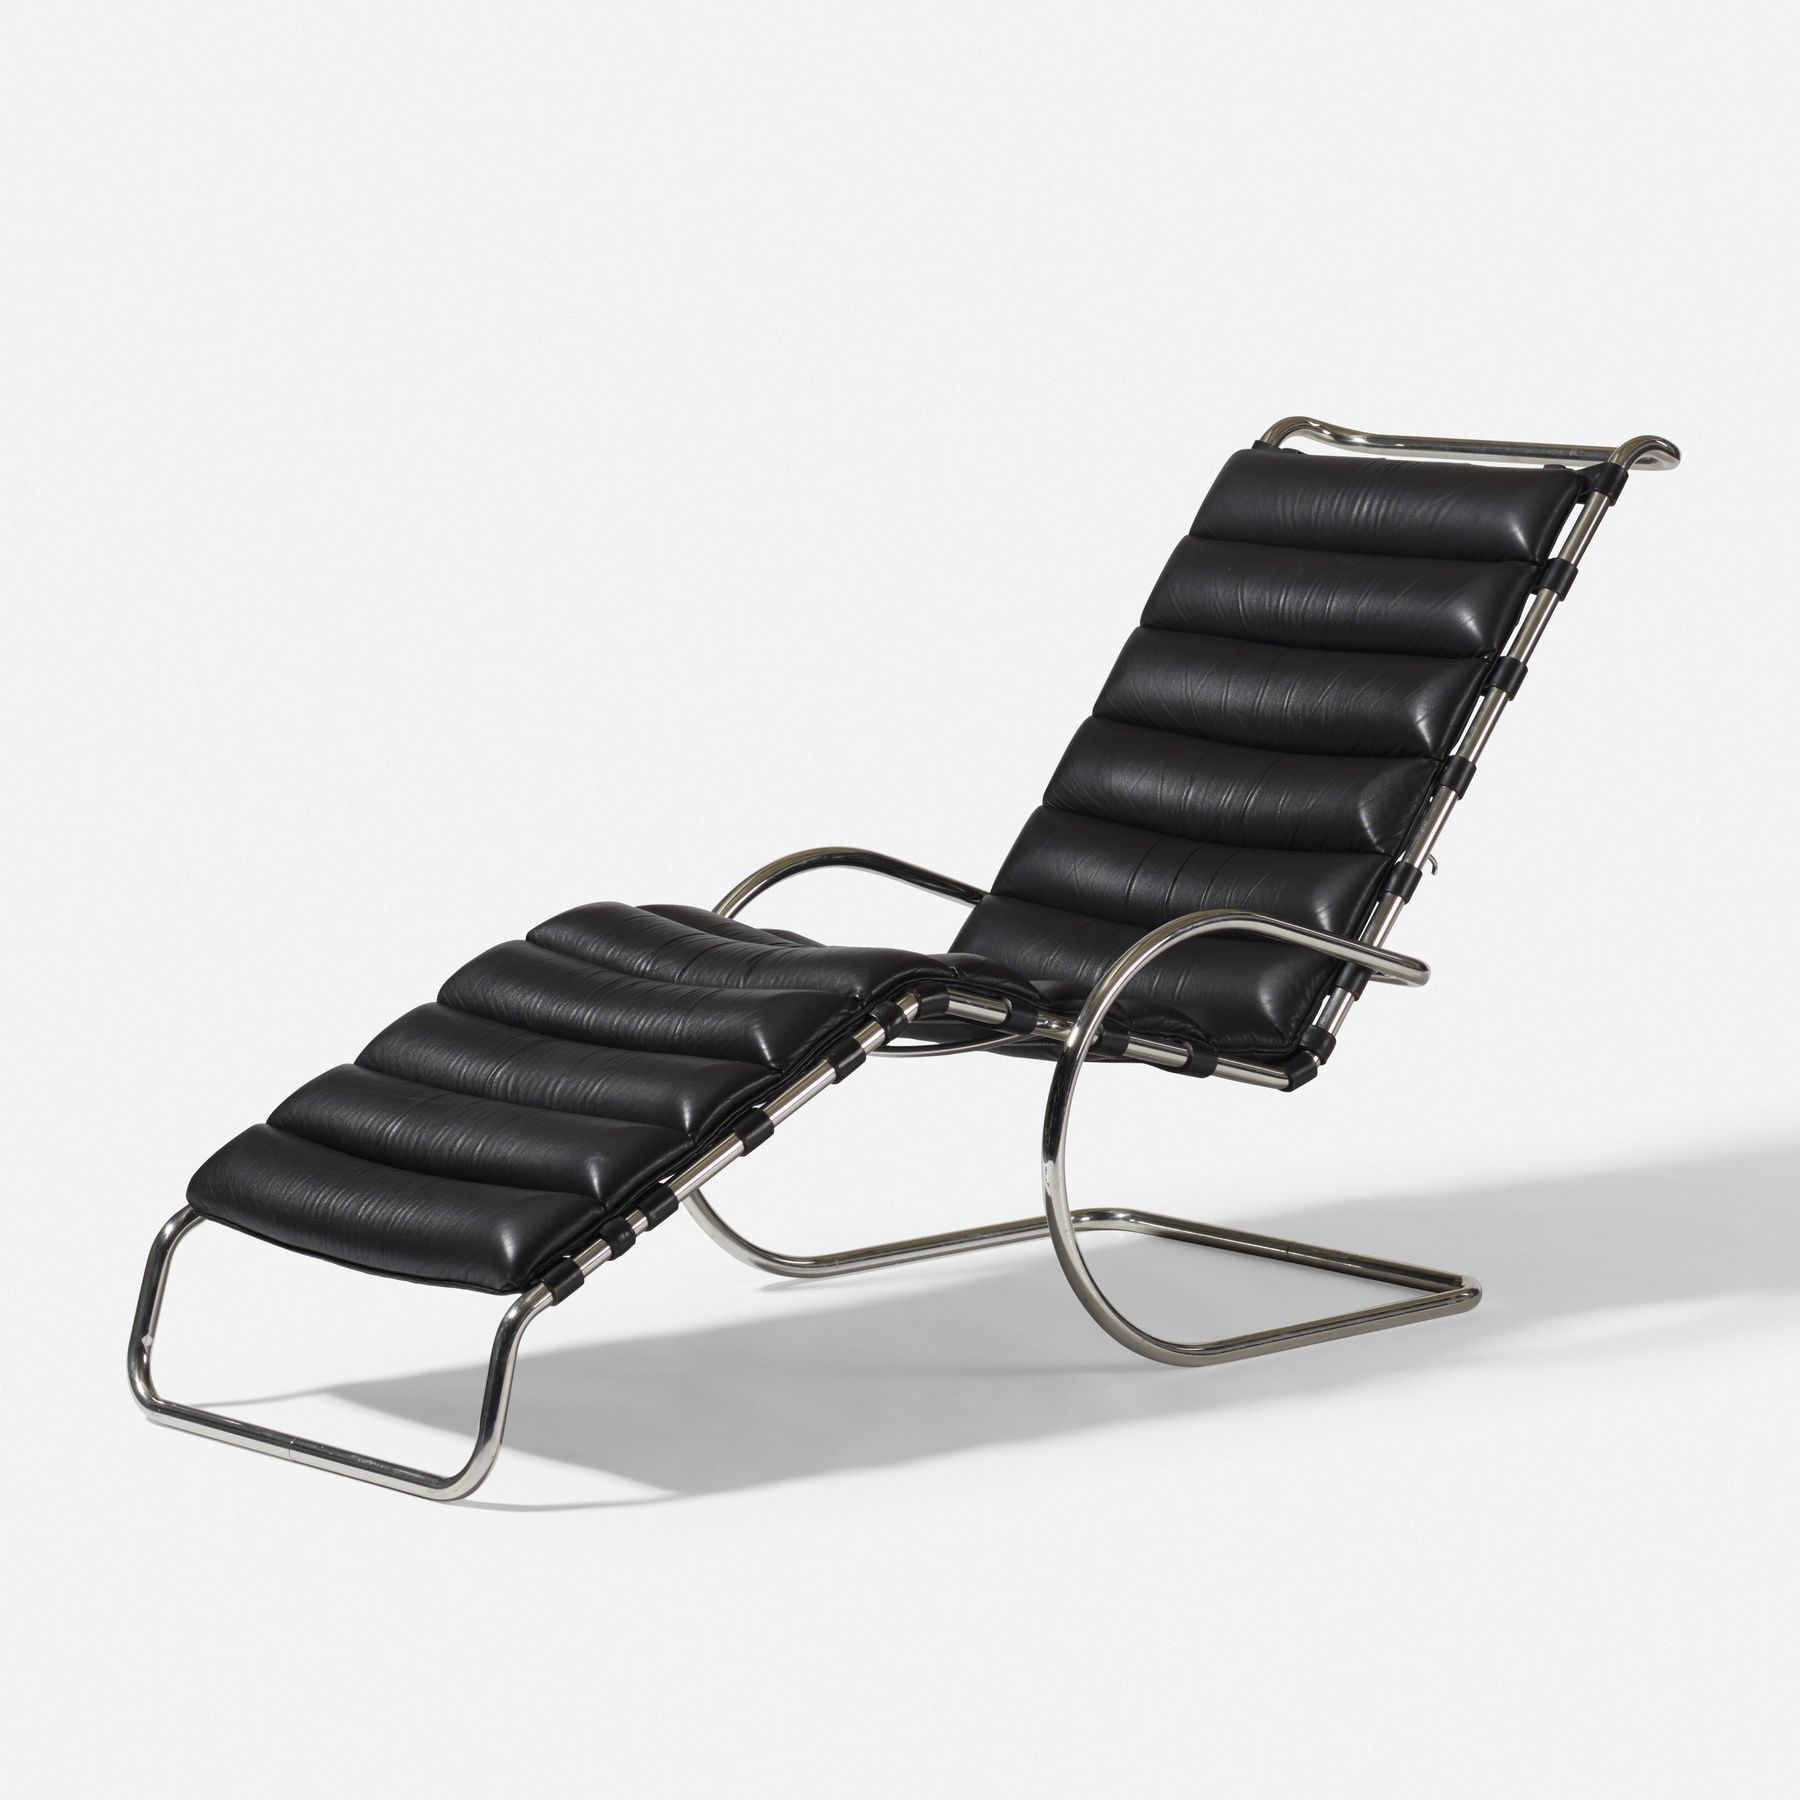 Ludwig Mies Van Der Rohe Model 242 Chaise Lounge Wright20 Com Ludwig Mies Van Der Rohe Mies Van Der Rohe Furniture Mies Van Der Rohe Chair